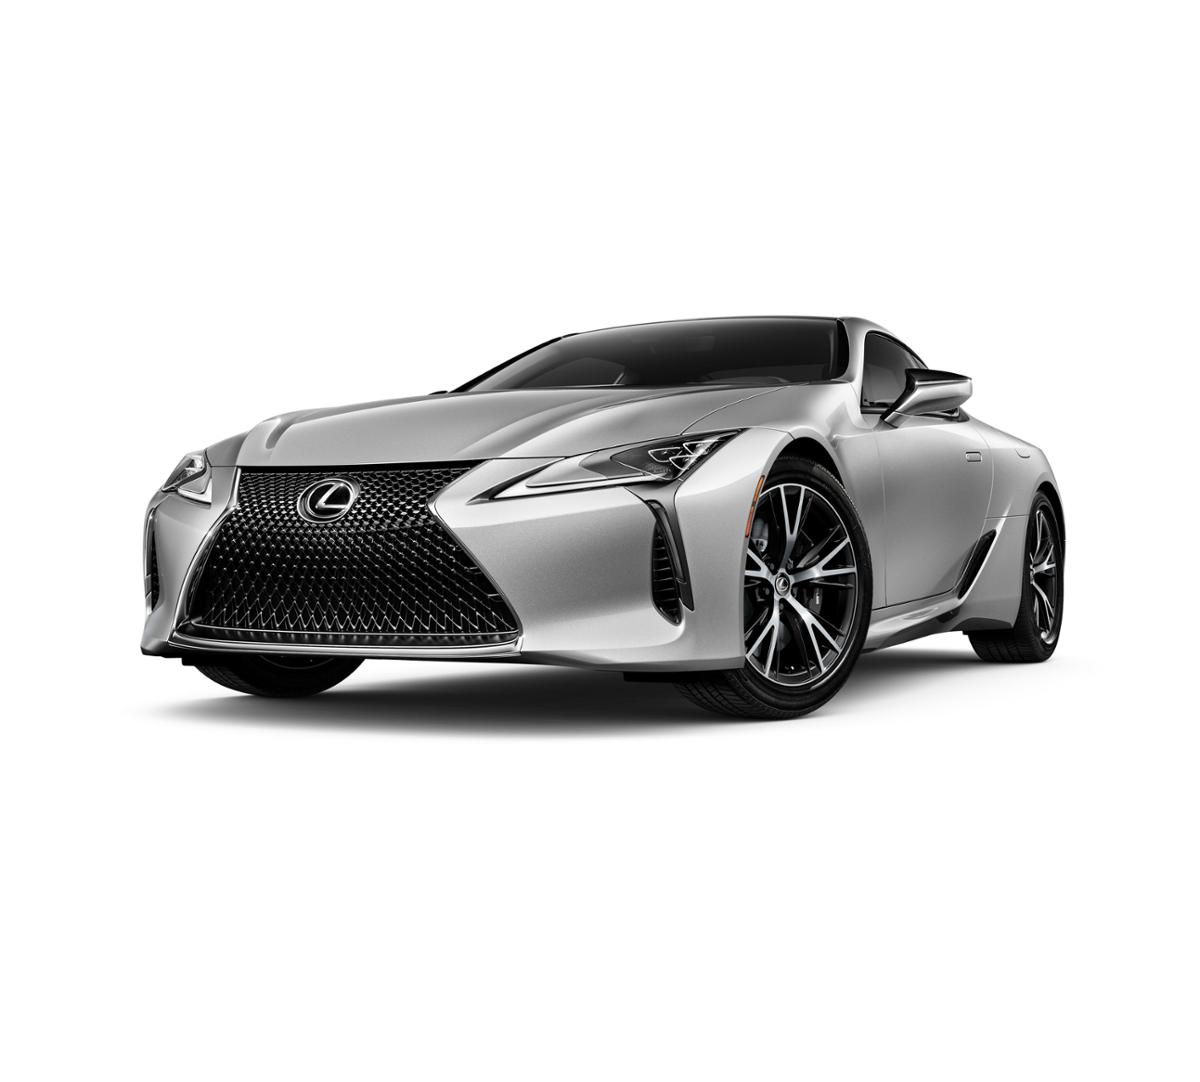 2019 Lexus LC 500 Vehicle Photo in Houston, TX 77546